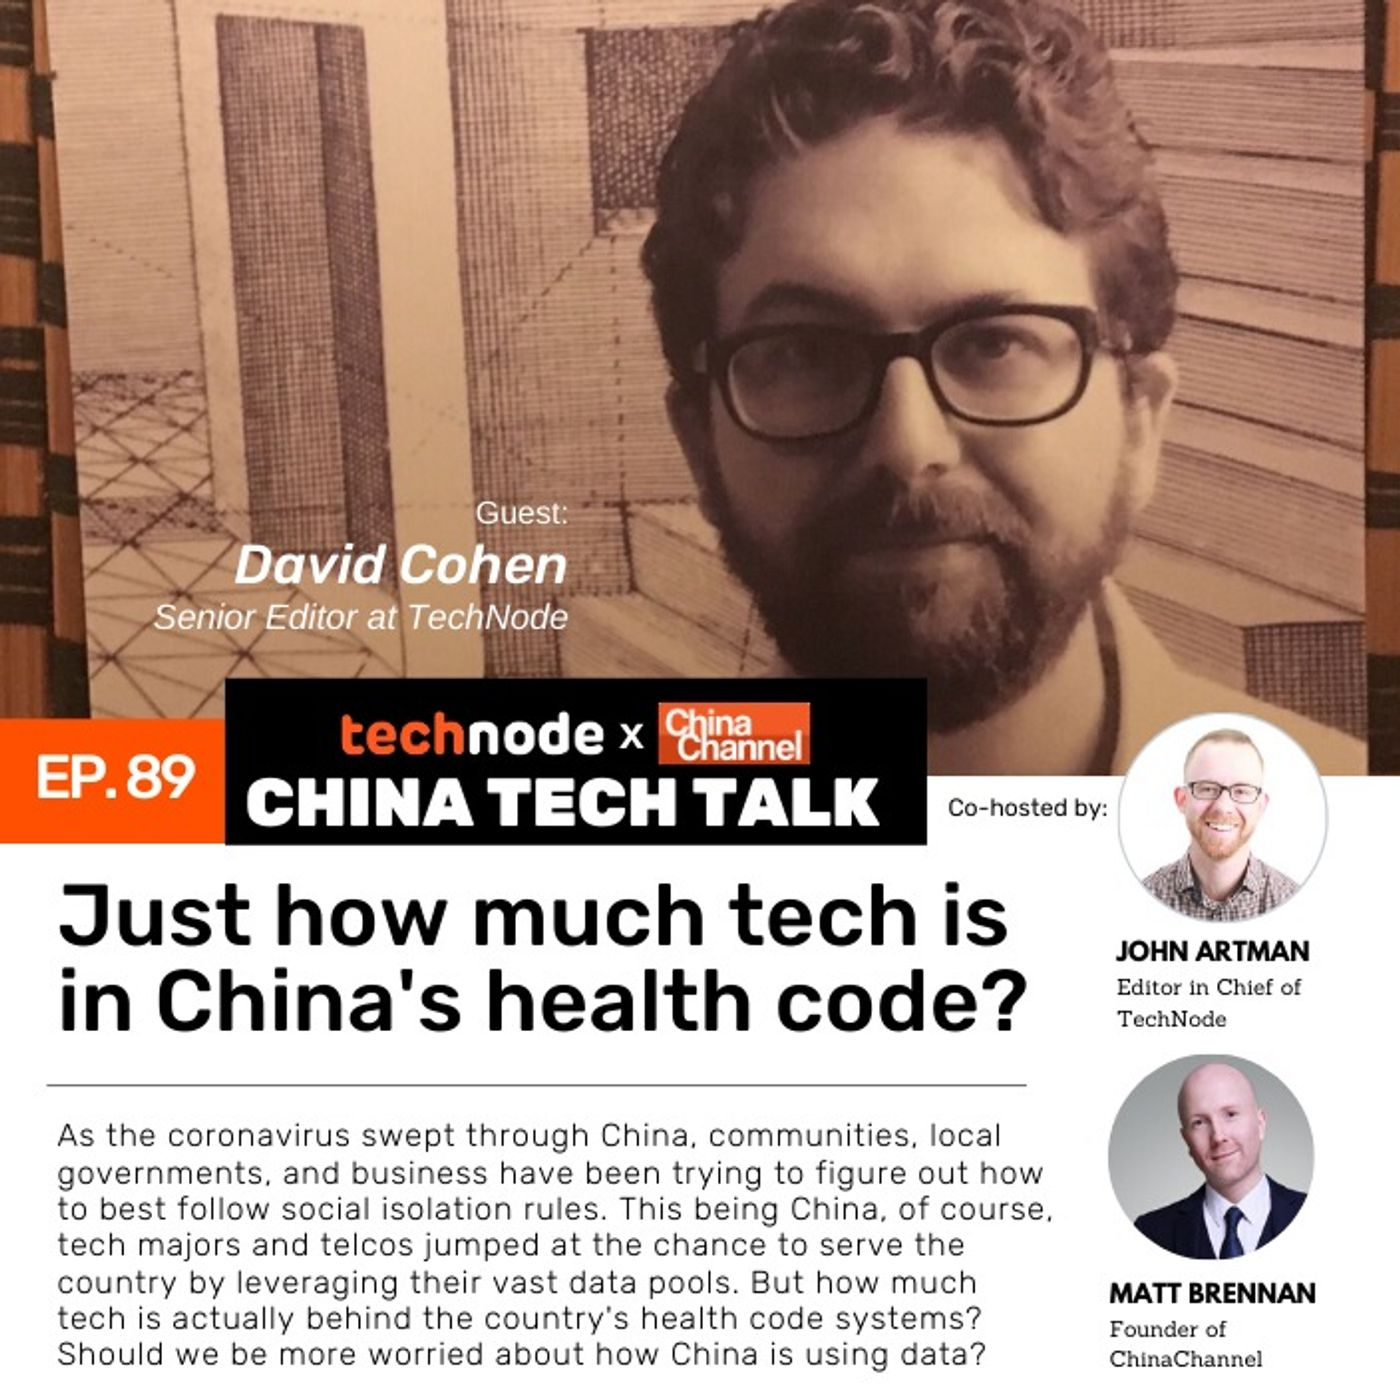 89: Just how much tech is in China's health code?